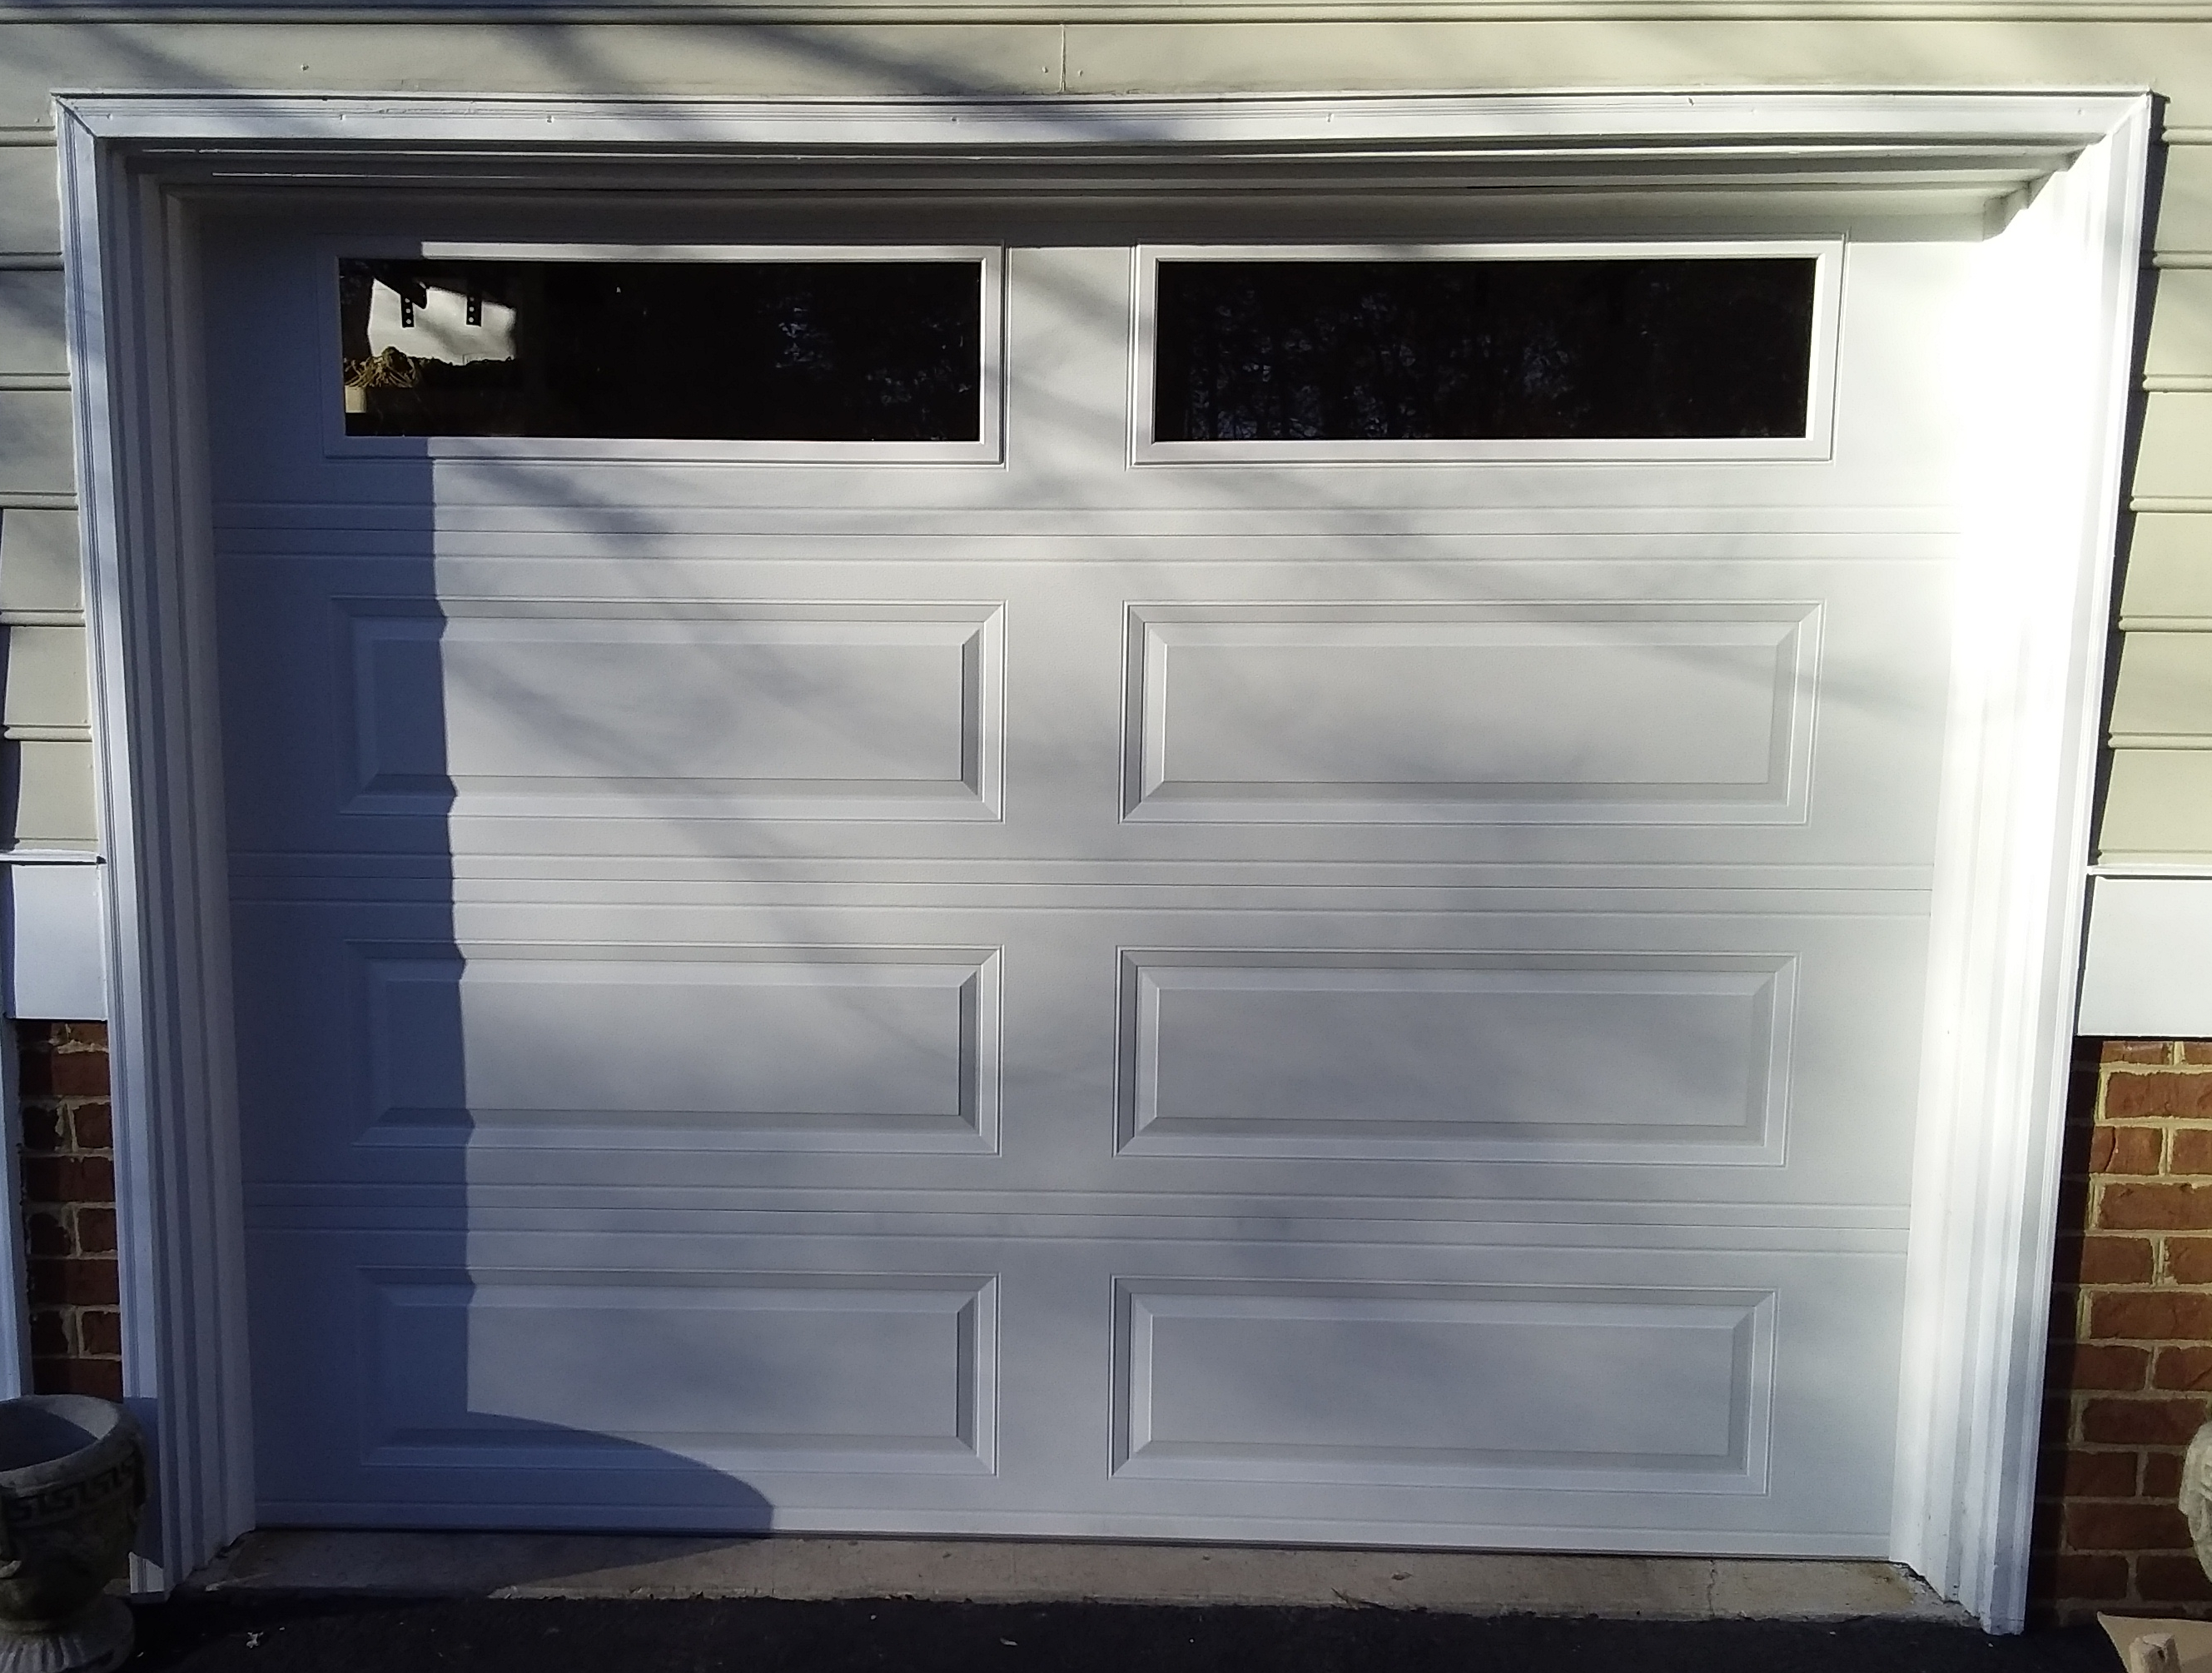 9x7 Model 4251 Raised Long Panel Garage Door Installed By The Richmond Store Teamappledoor Garage Doors Door Installation Garage Door Panels